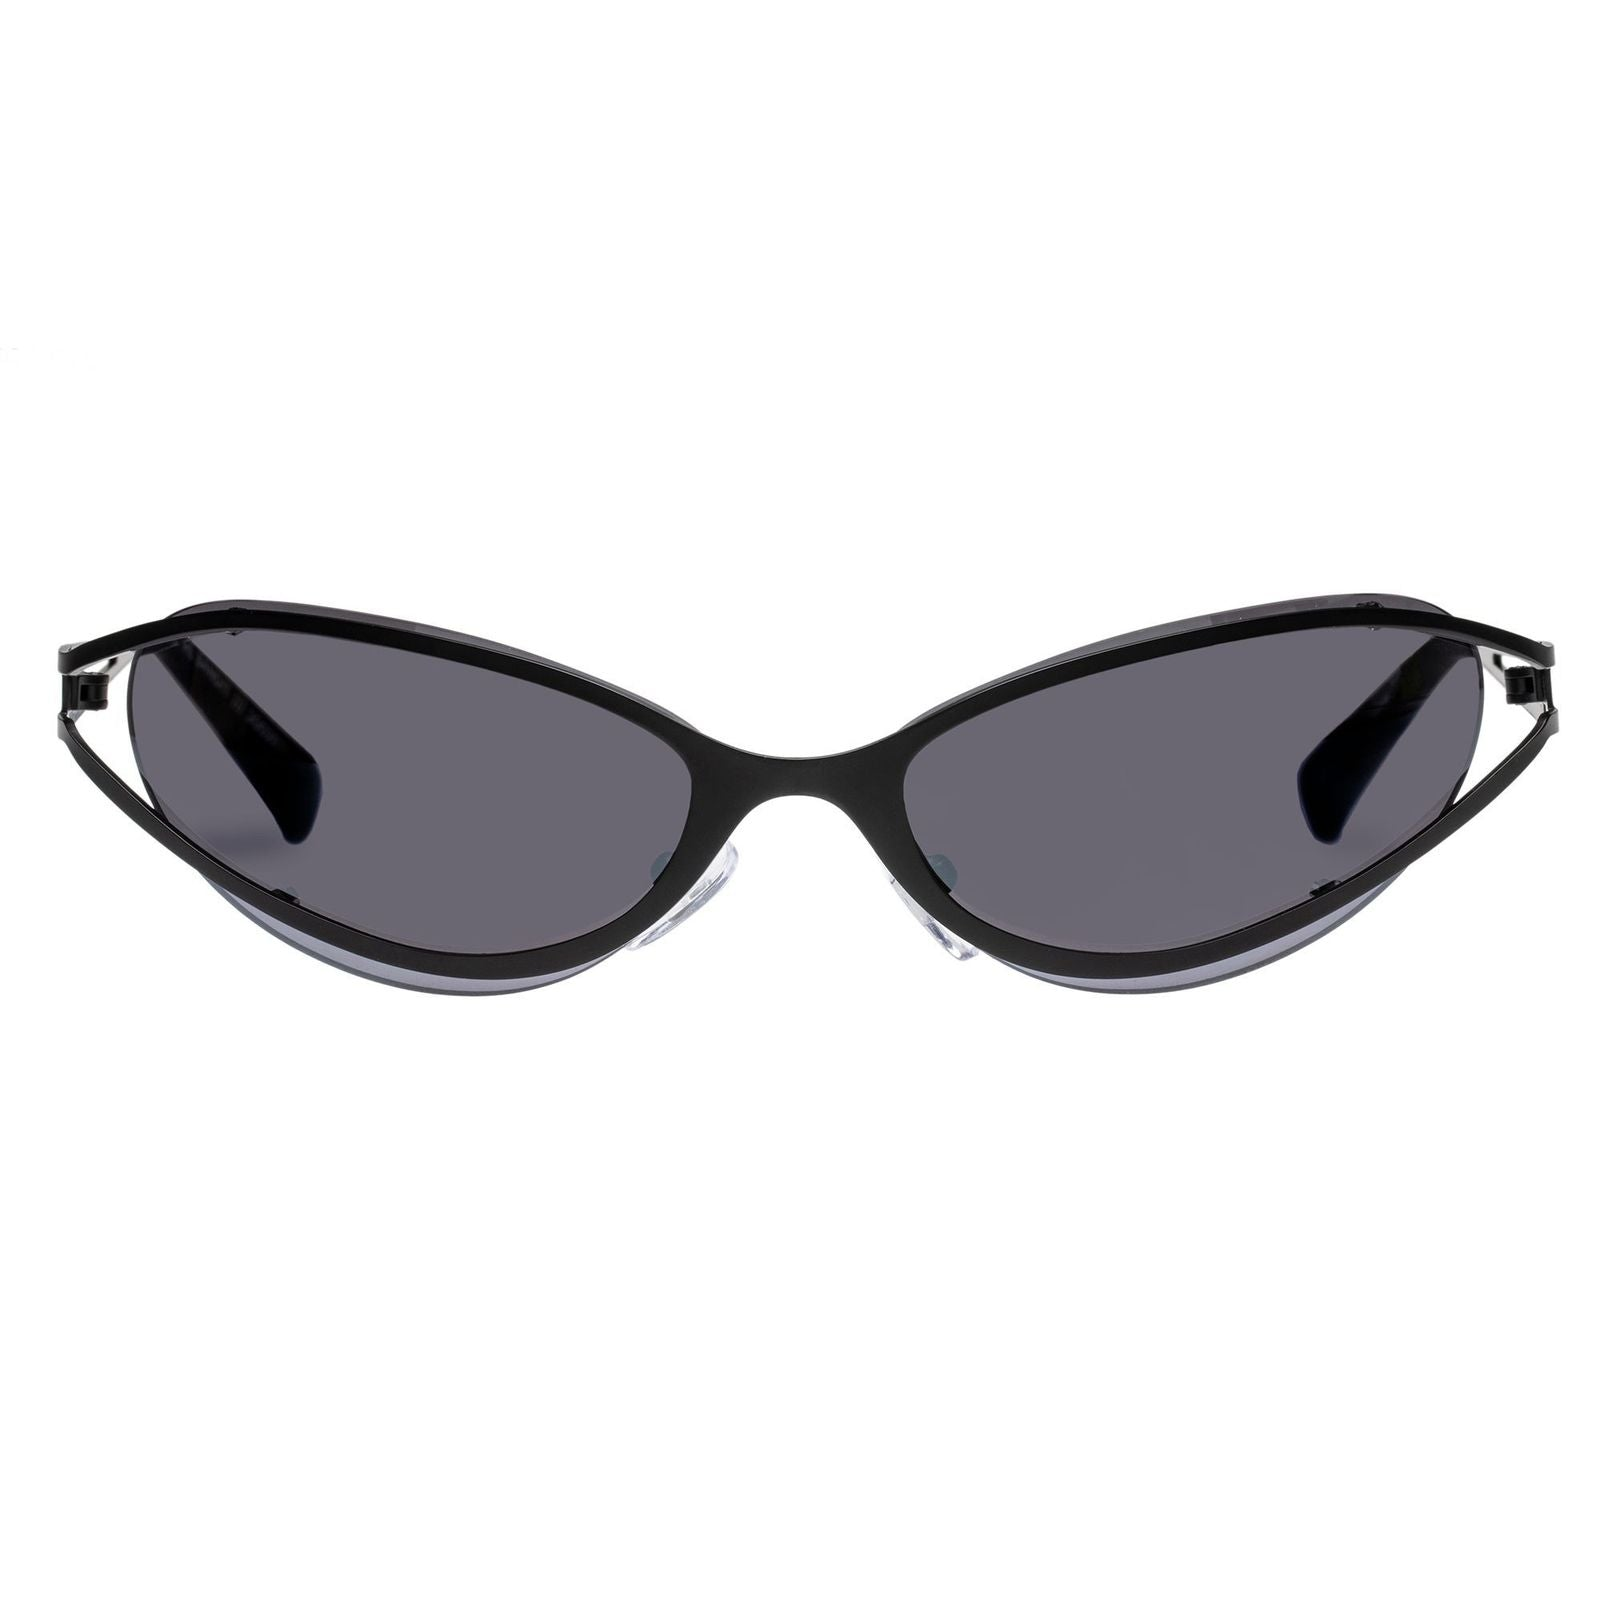 ADAM SELMAN X LE SPECS  / THE BANDIT / BLACK MATTE